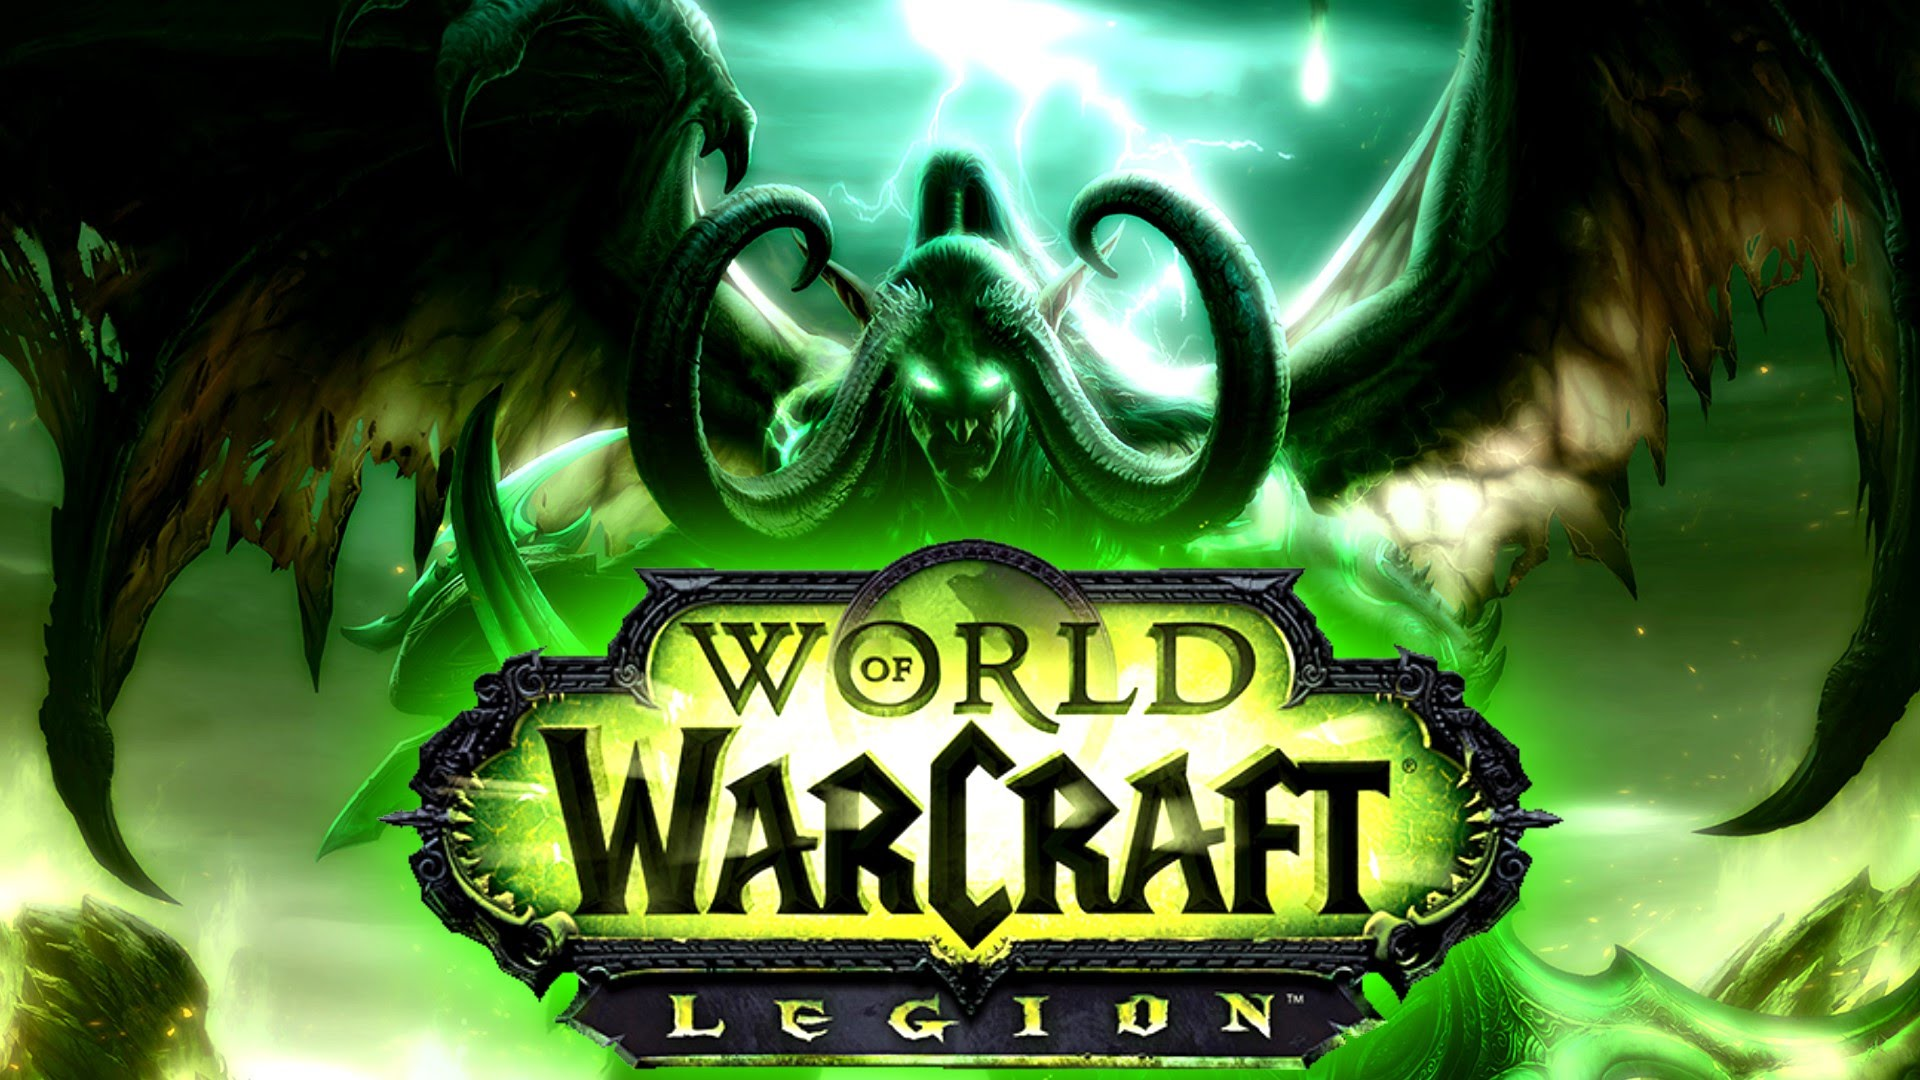 World of Warcraft LEGION +100 LVL RU SCAN